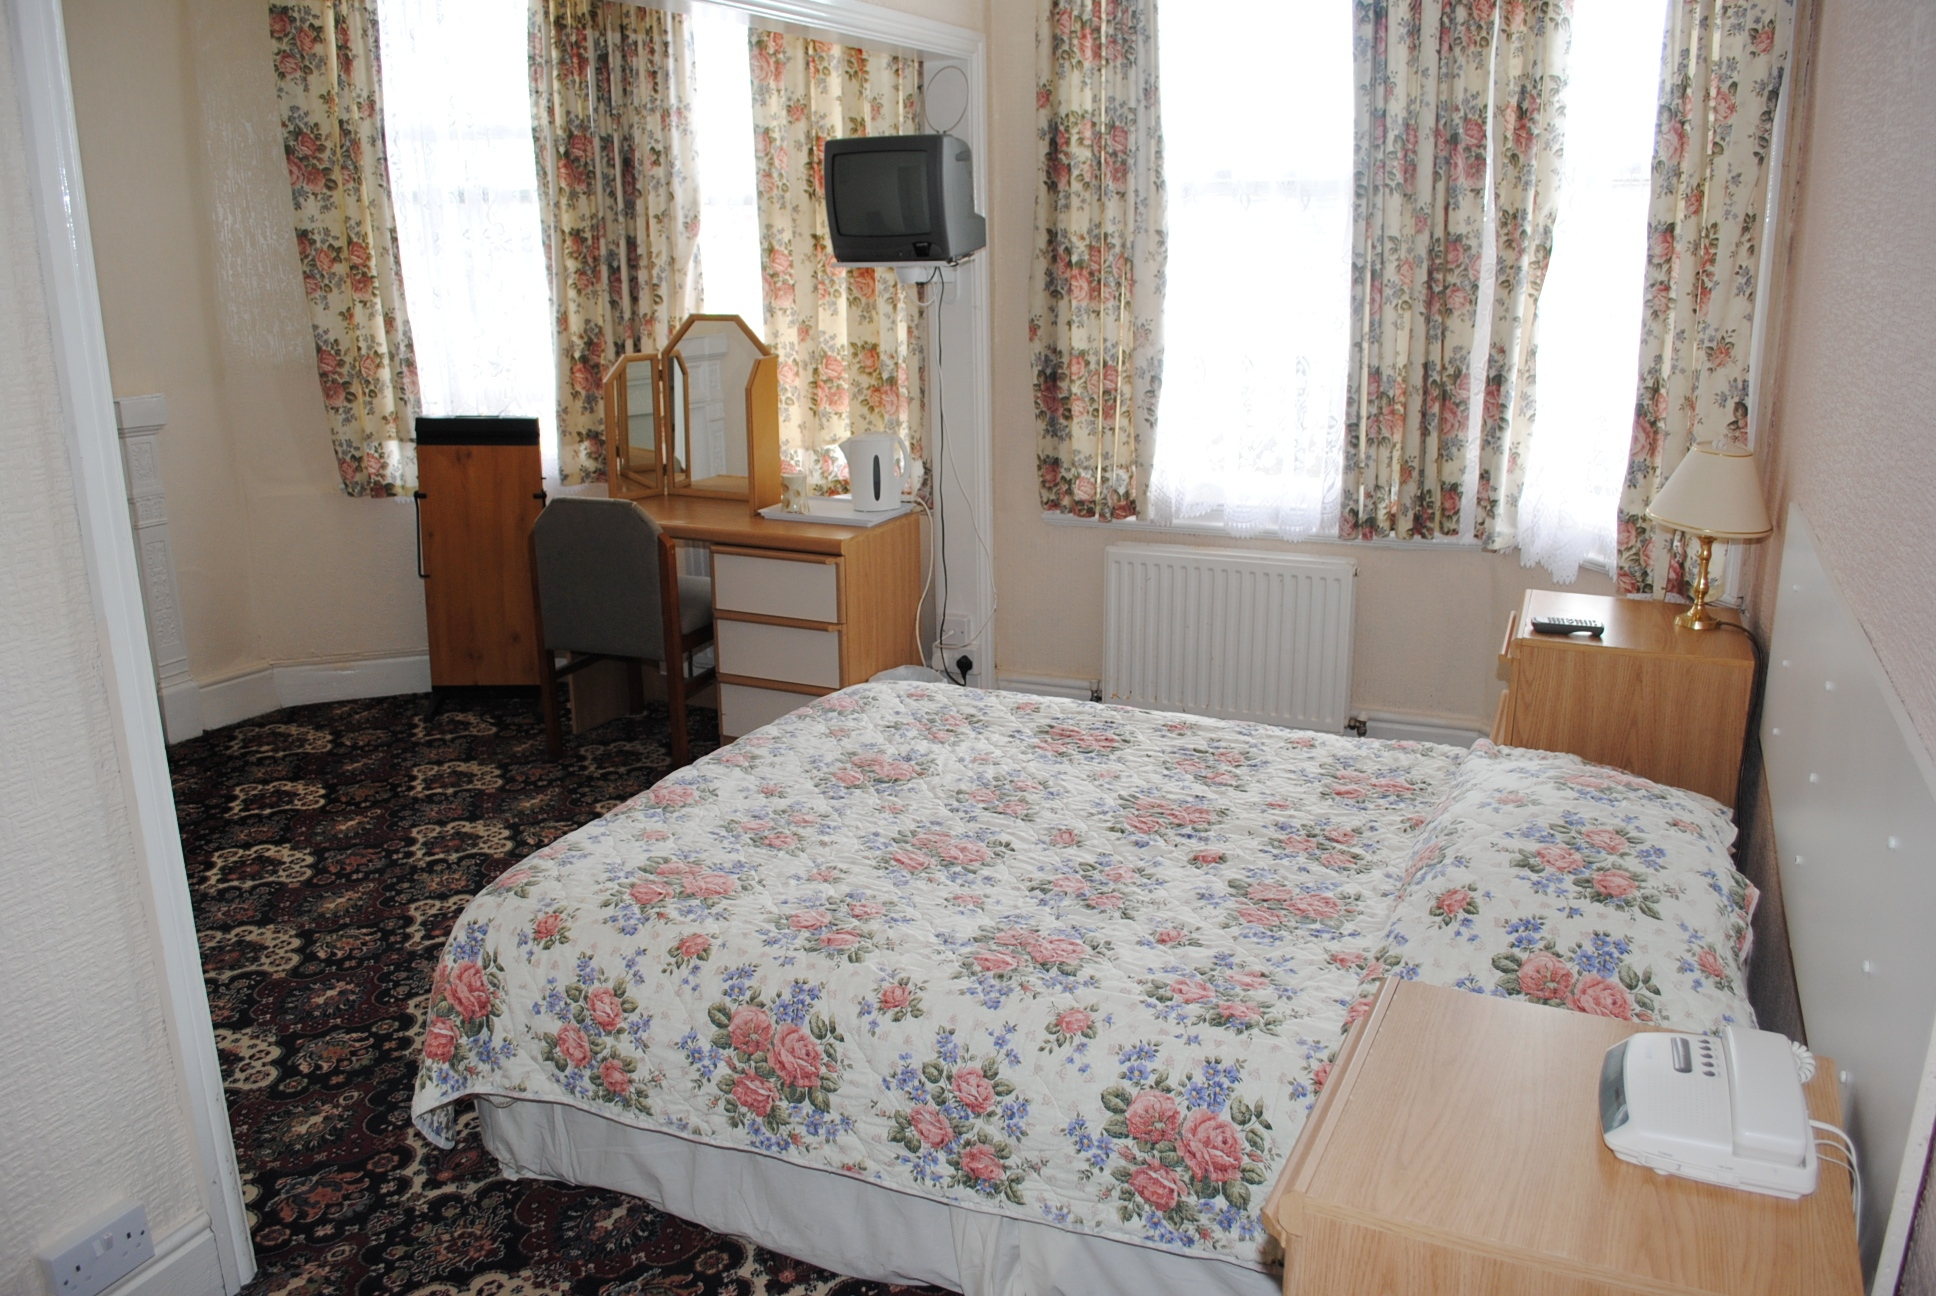 15 bedroom guest house For Sale in Douglas - Property photograph